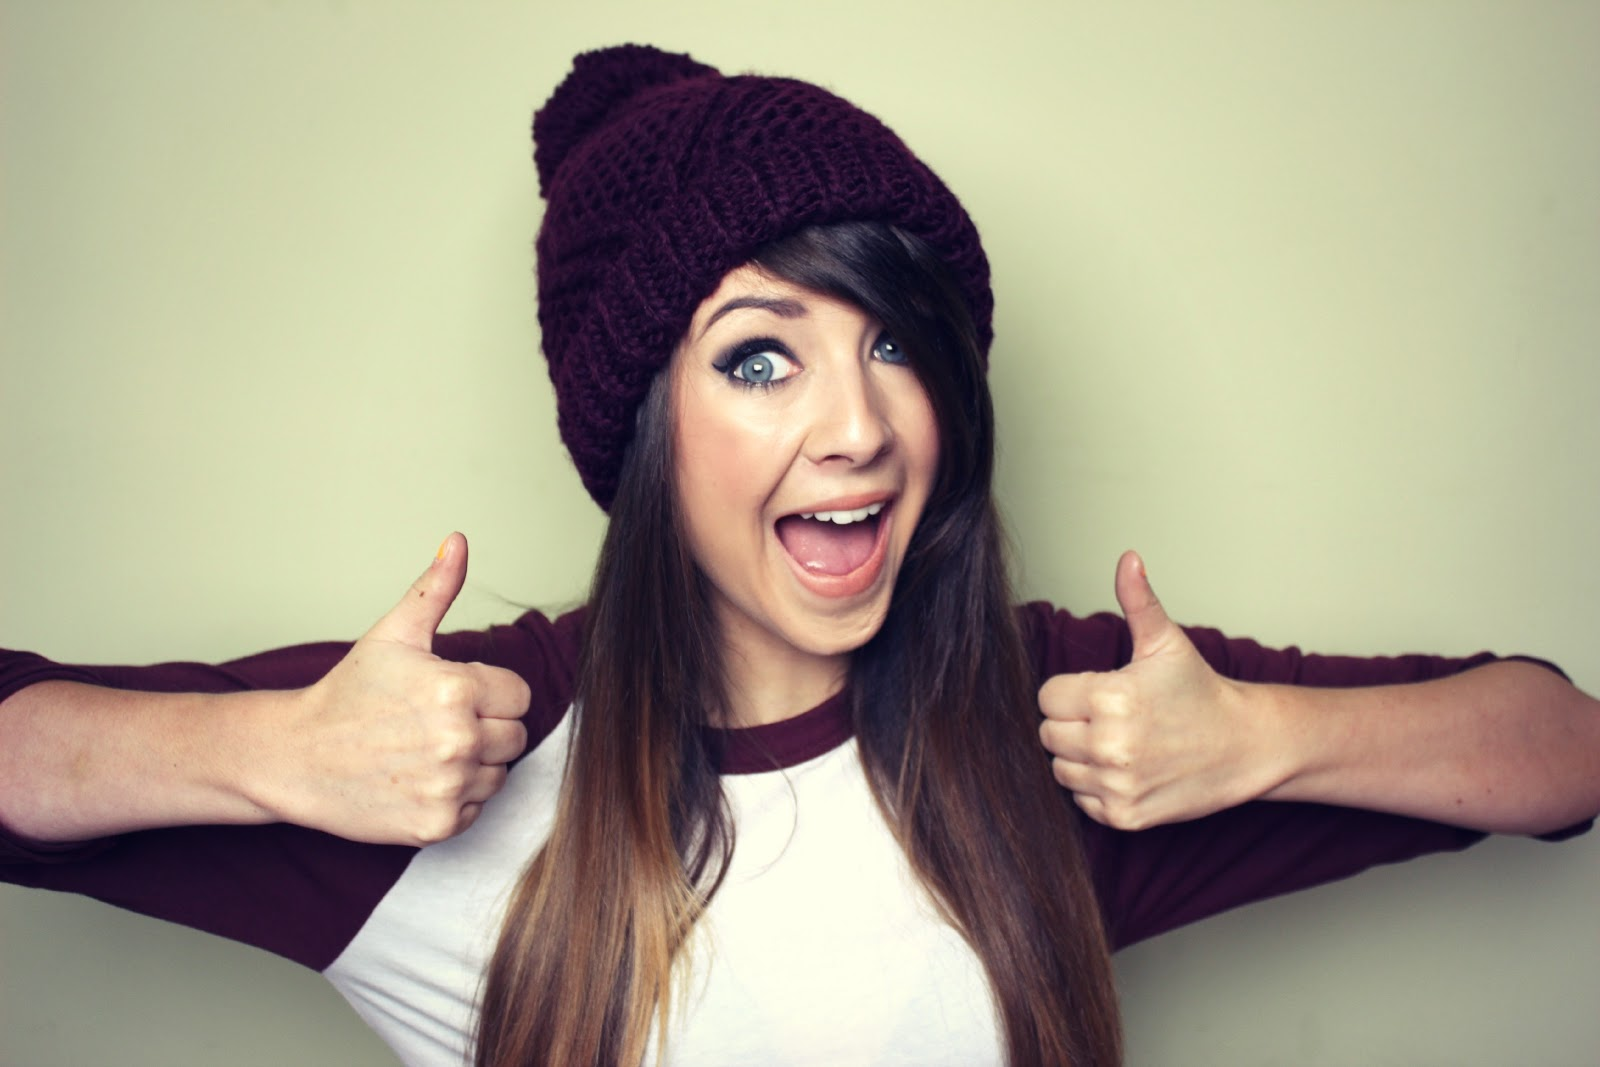 http://www.zoella.co.uk/